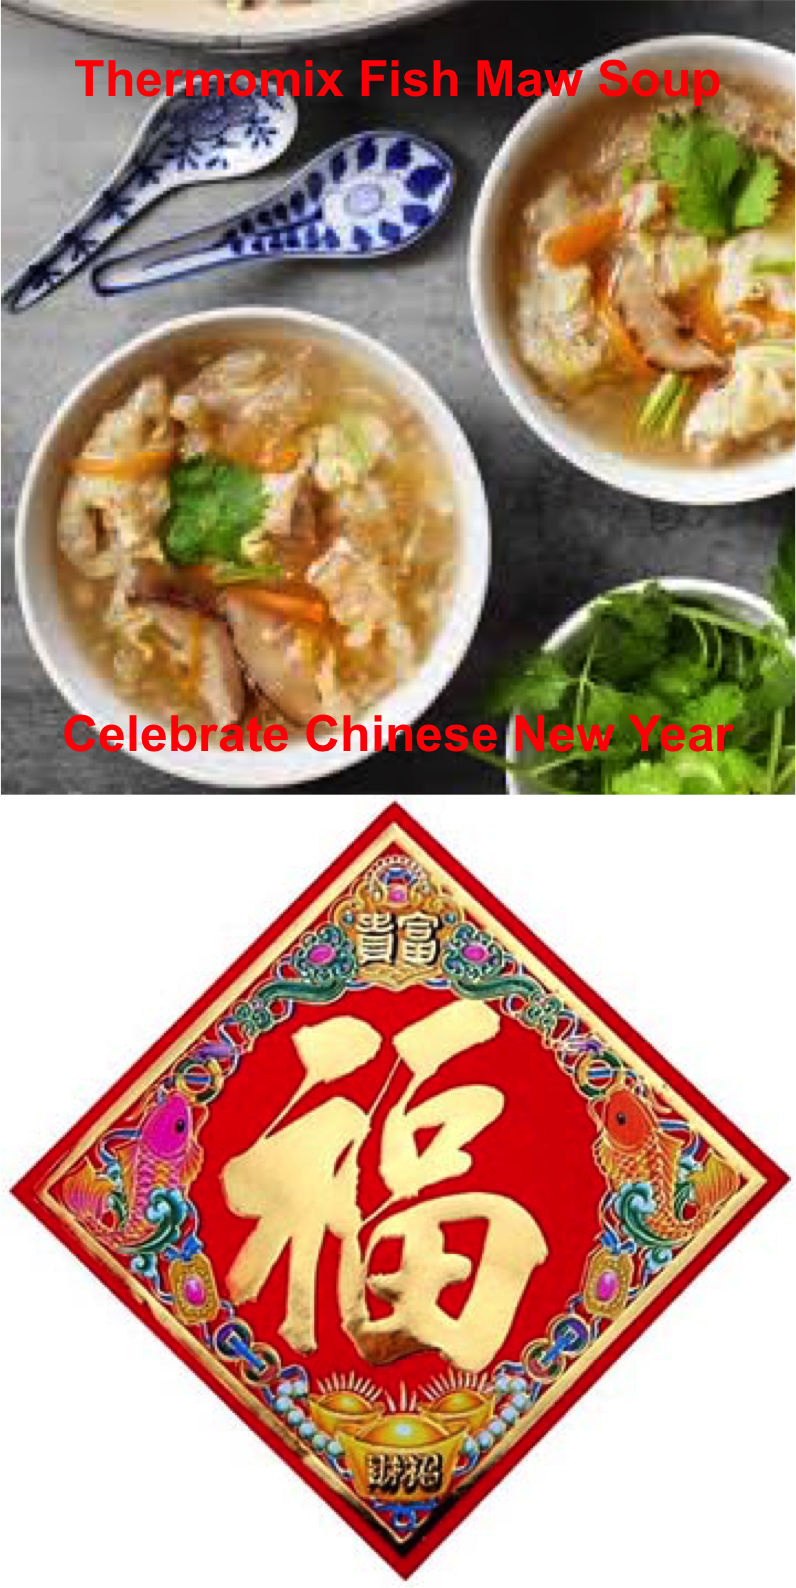 Thermomix Cooking Asian: Happy Chinese New Year! Video for Fish Maw Soup with Chinese New Year Recipe Book included: all from Thermomix Malaysia. #thermomixasiancooking #thermomixcanada